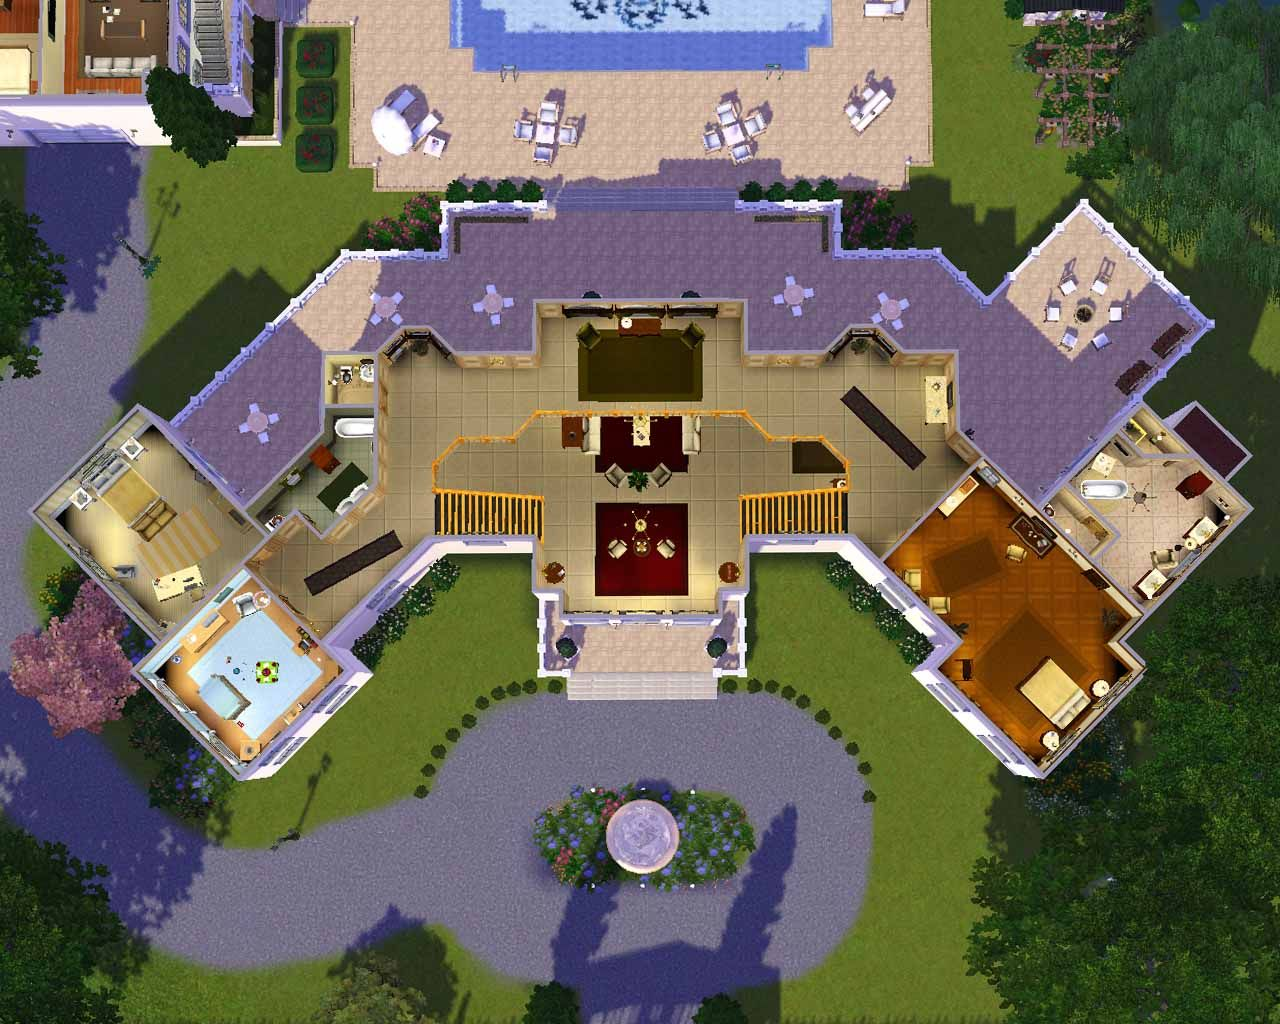 The sims 3 house designs google search idea the sims for House building blueprints